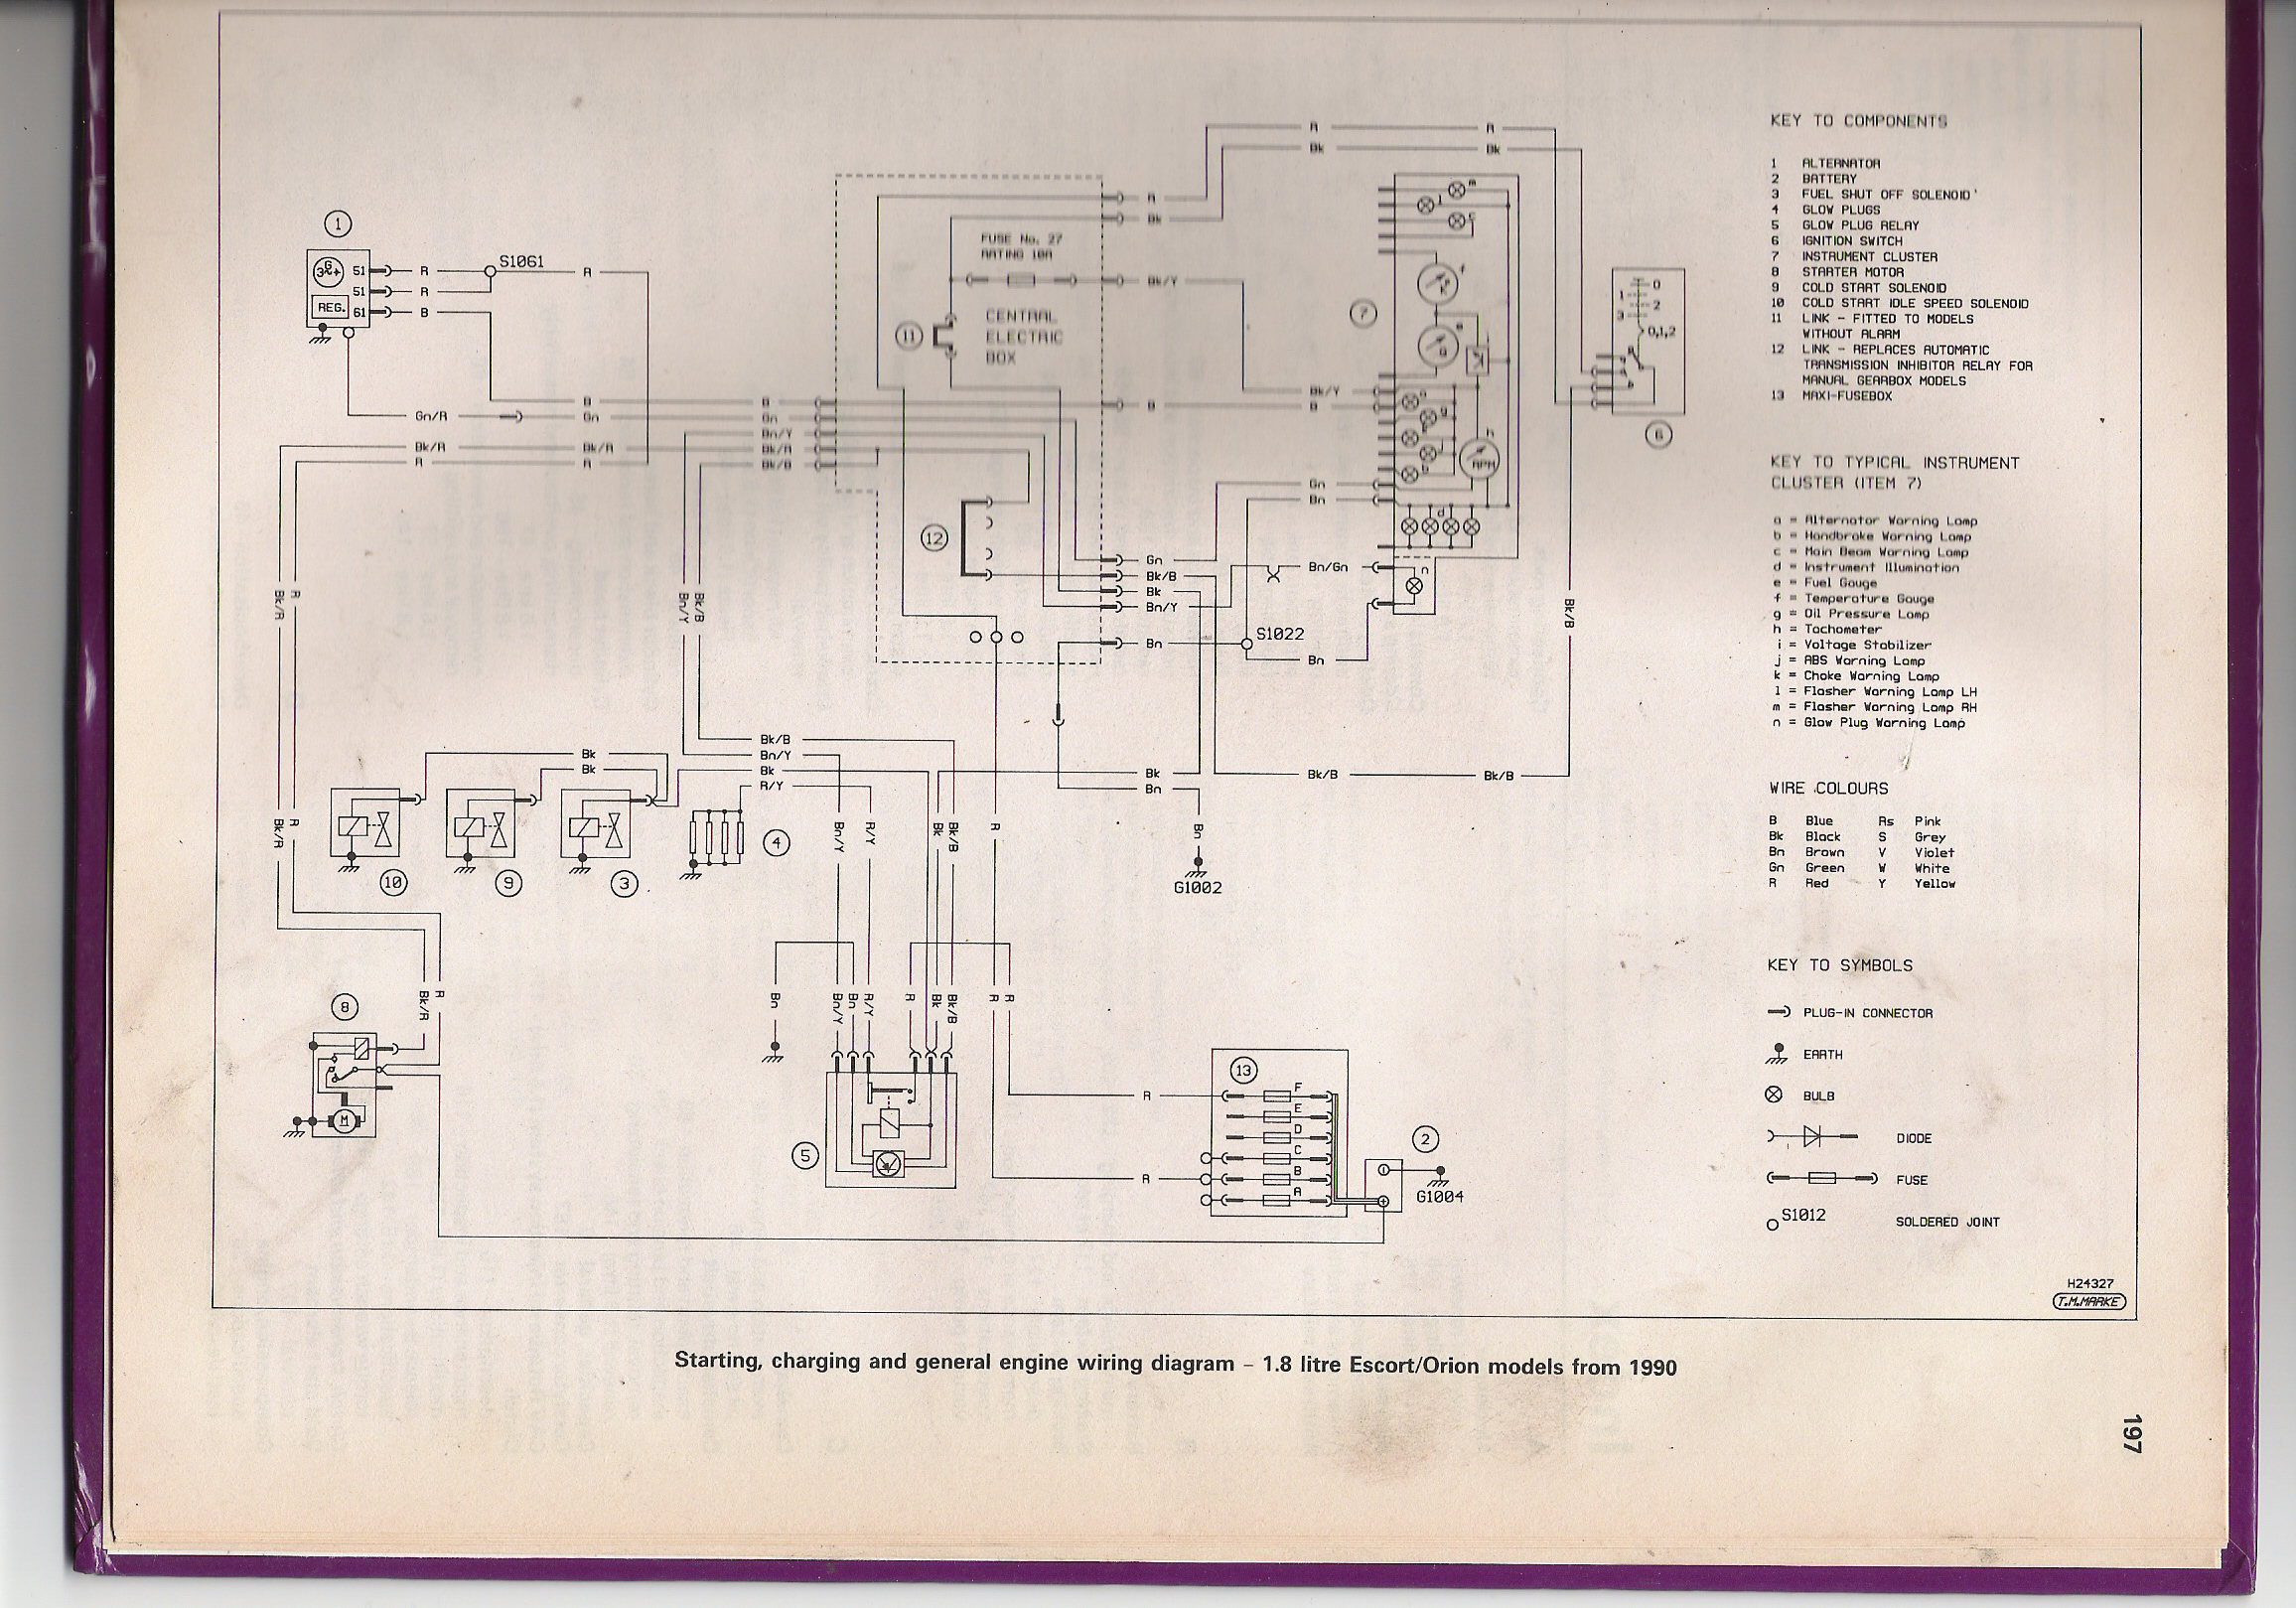 fordwiringdl mk4 wiring diagram wiring diagram symbols \u2022 wiring diagrams j 1999 ford escort wiring diagram pdf at sewacar.co